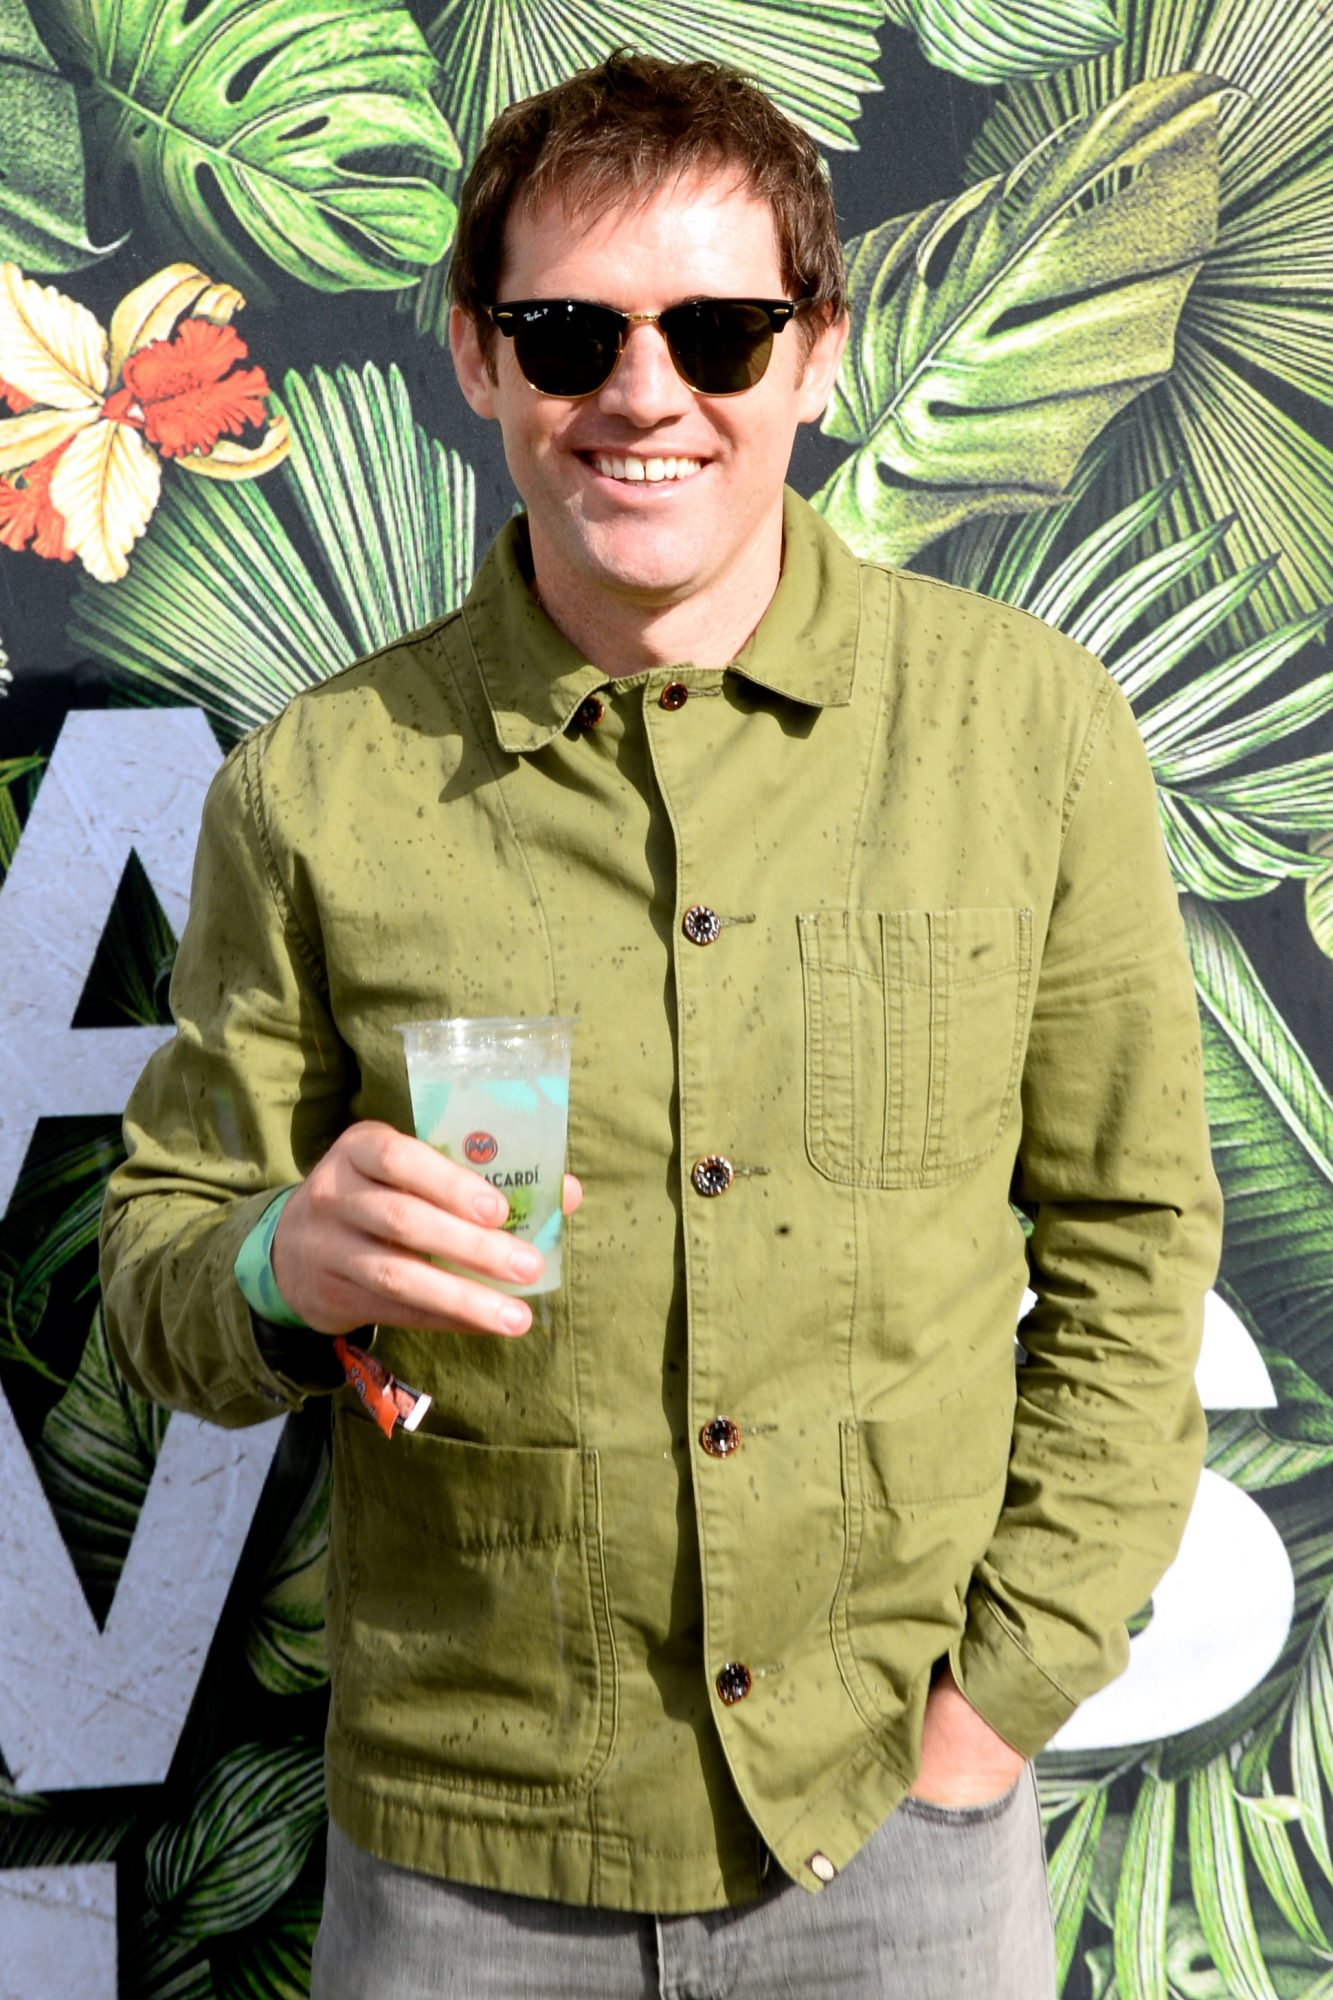 31st August 2019. Kevin Kilbane pictured at Casa Bacardi on day 2 of Electric Picnic. Photo: Justin Farrelly.